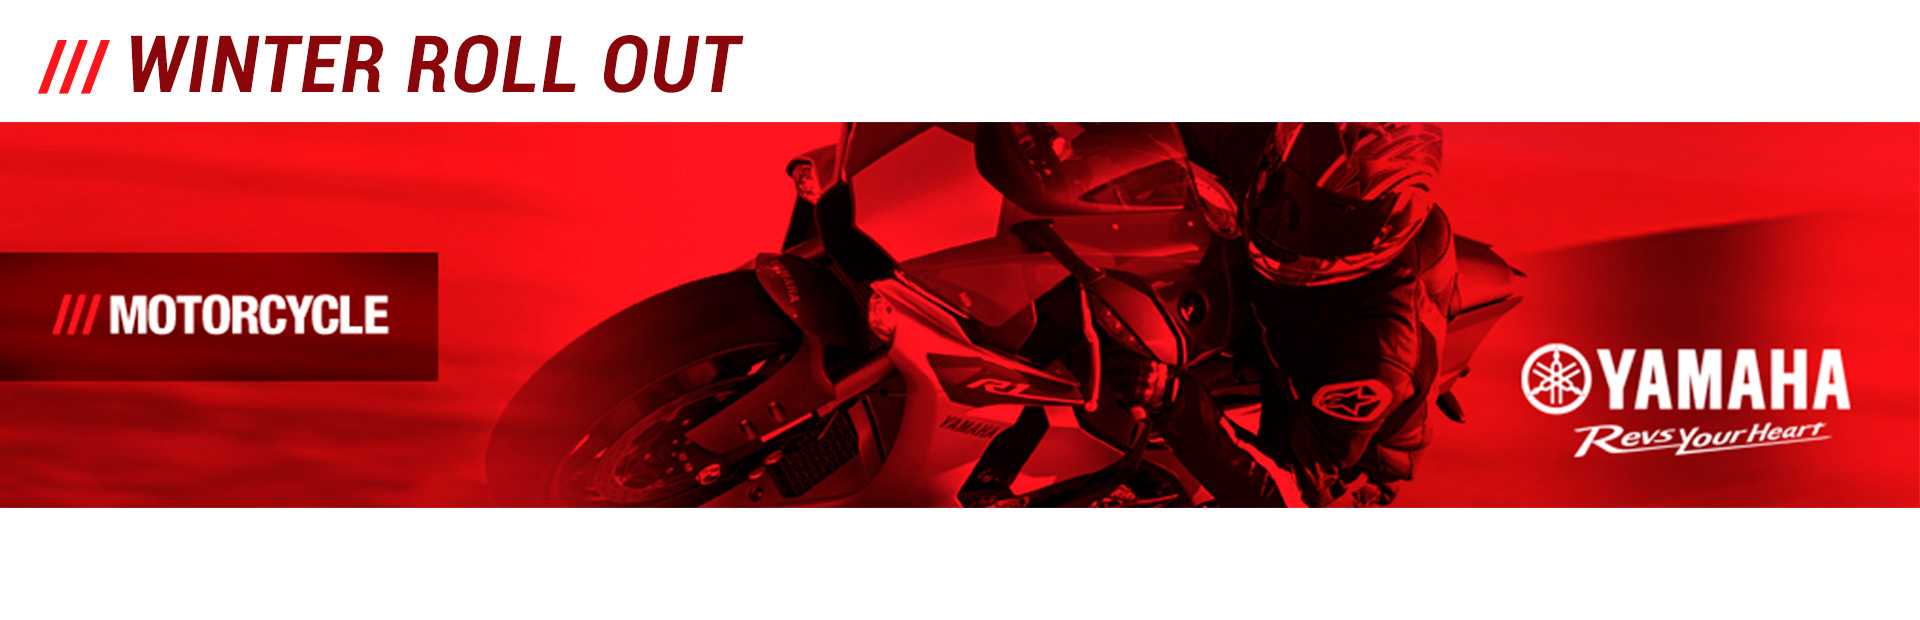 Yamaha: Winter Roll Out